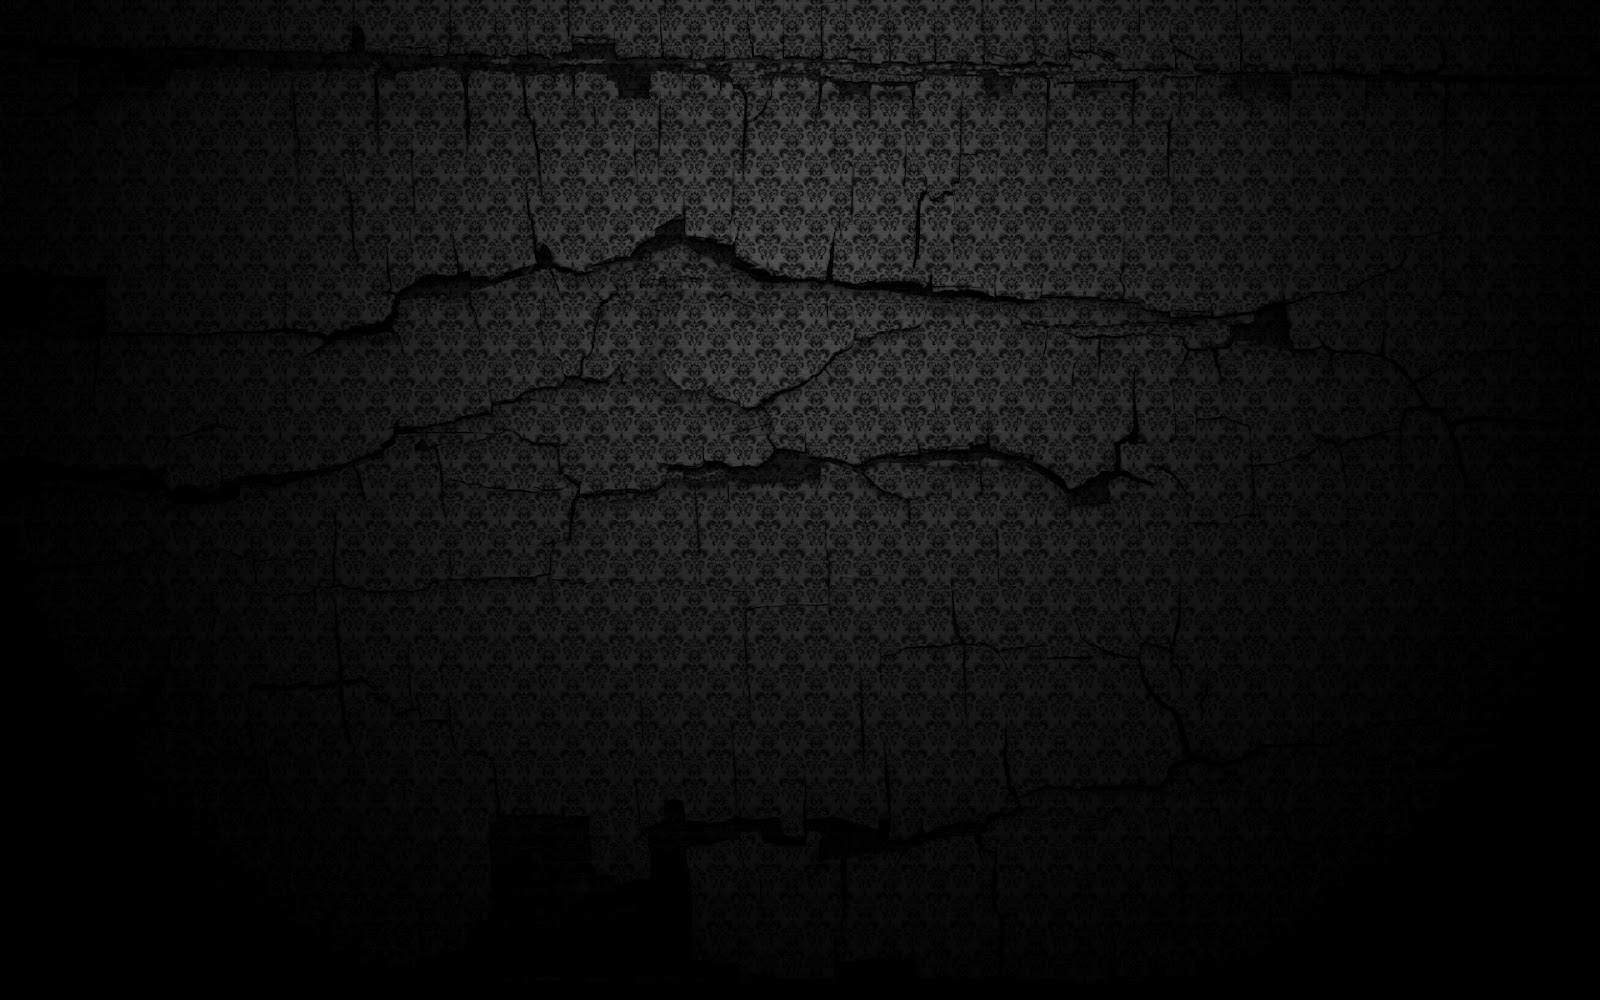 Dark patterns hd wallpapers hd wallpapers backgrounds for Dark pattern background